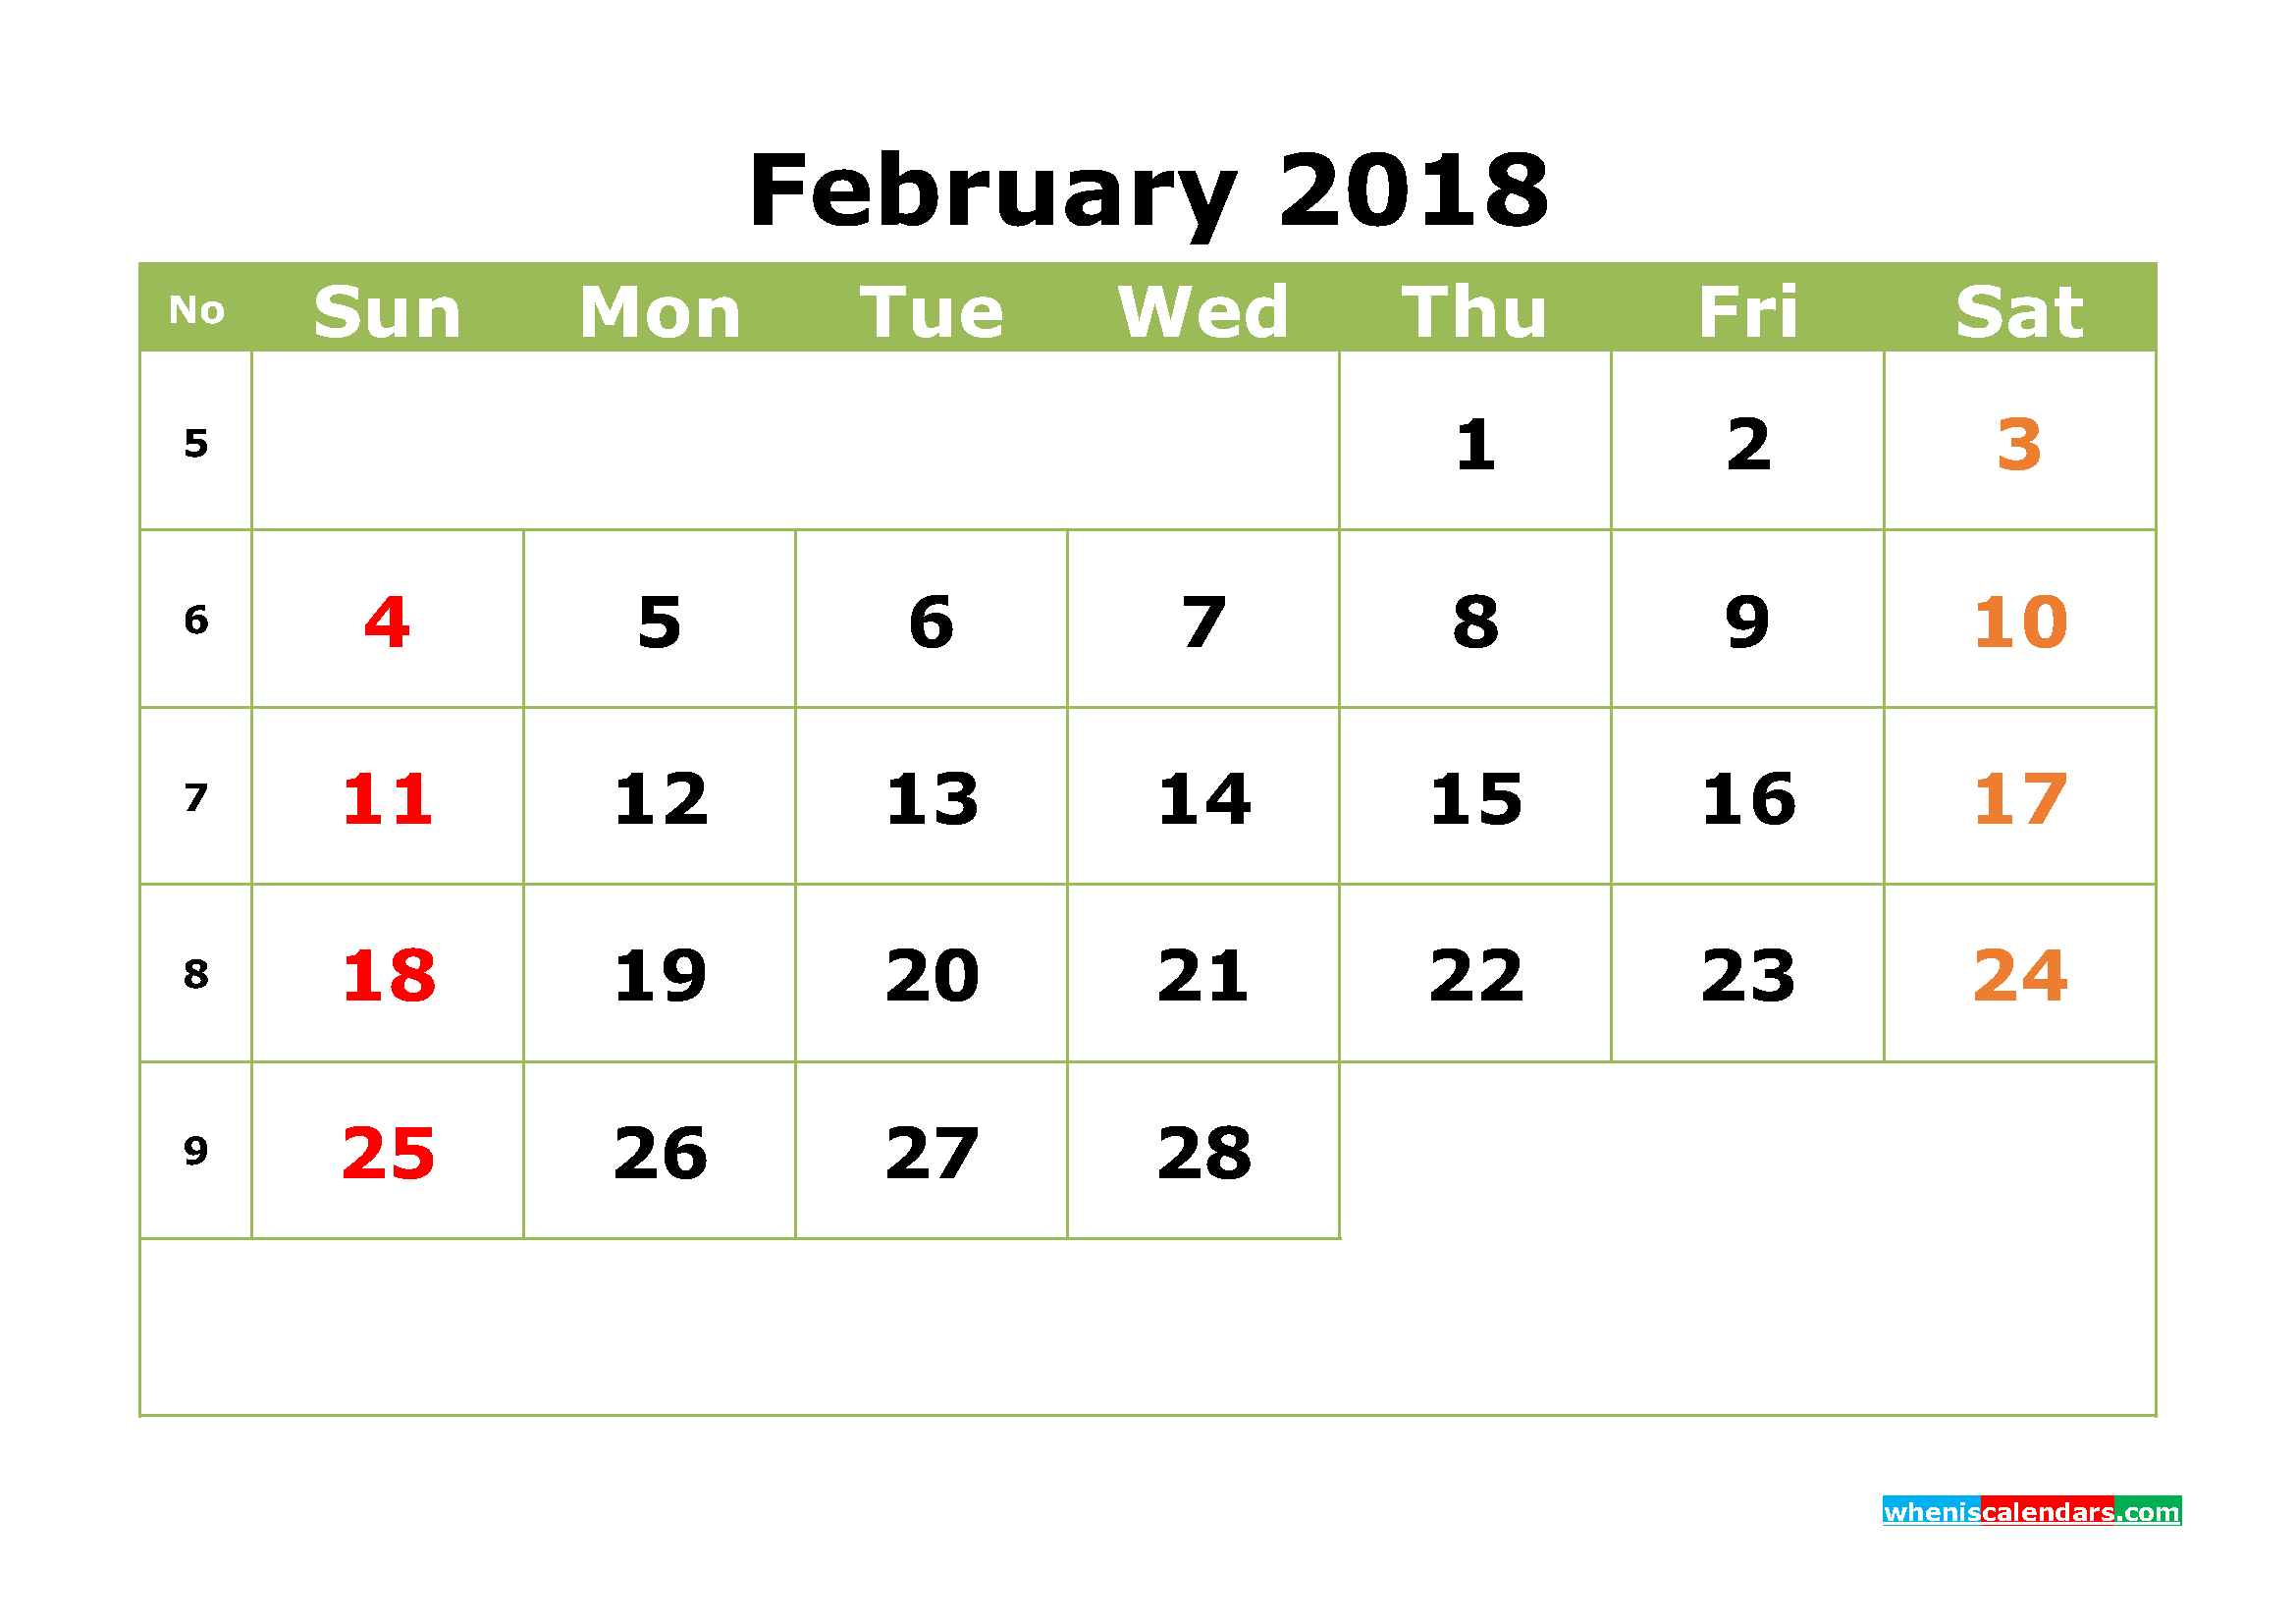 February 2018 Calendar Printable Monthly Calendar with Week Numbers